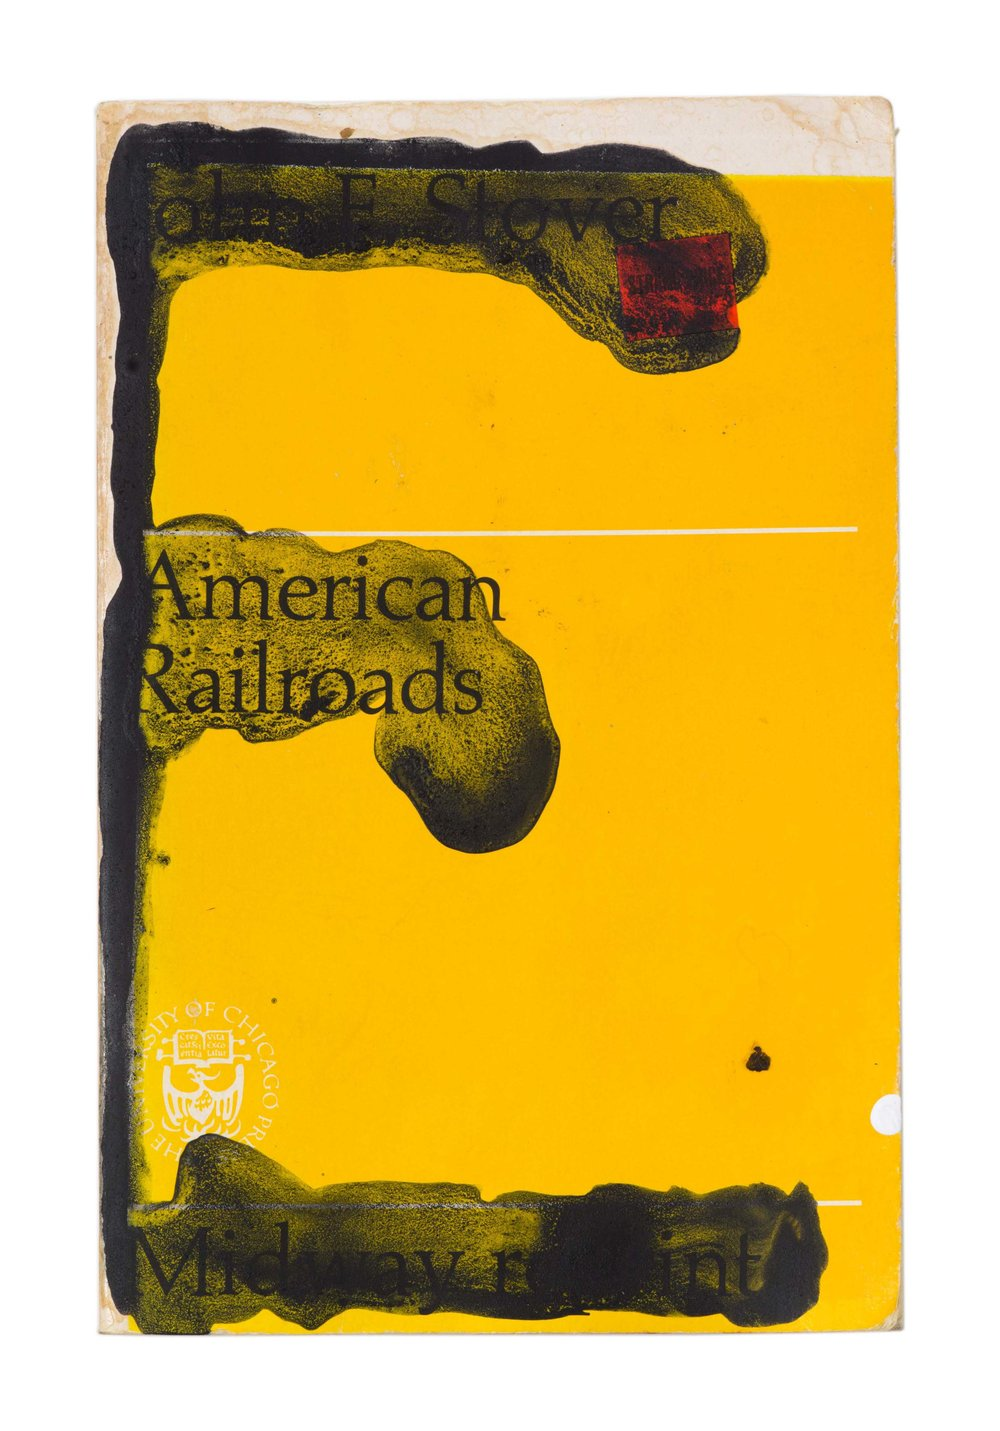 Drew Beattie and Ben Shepard  American Railroads   acrylic on used book 2016 8 ½ x 5 ½ inches